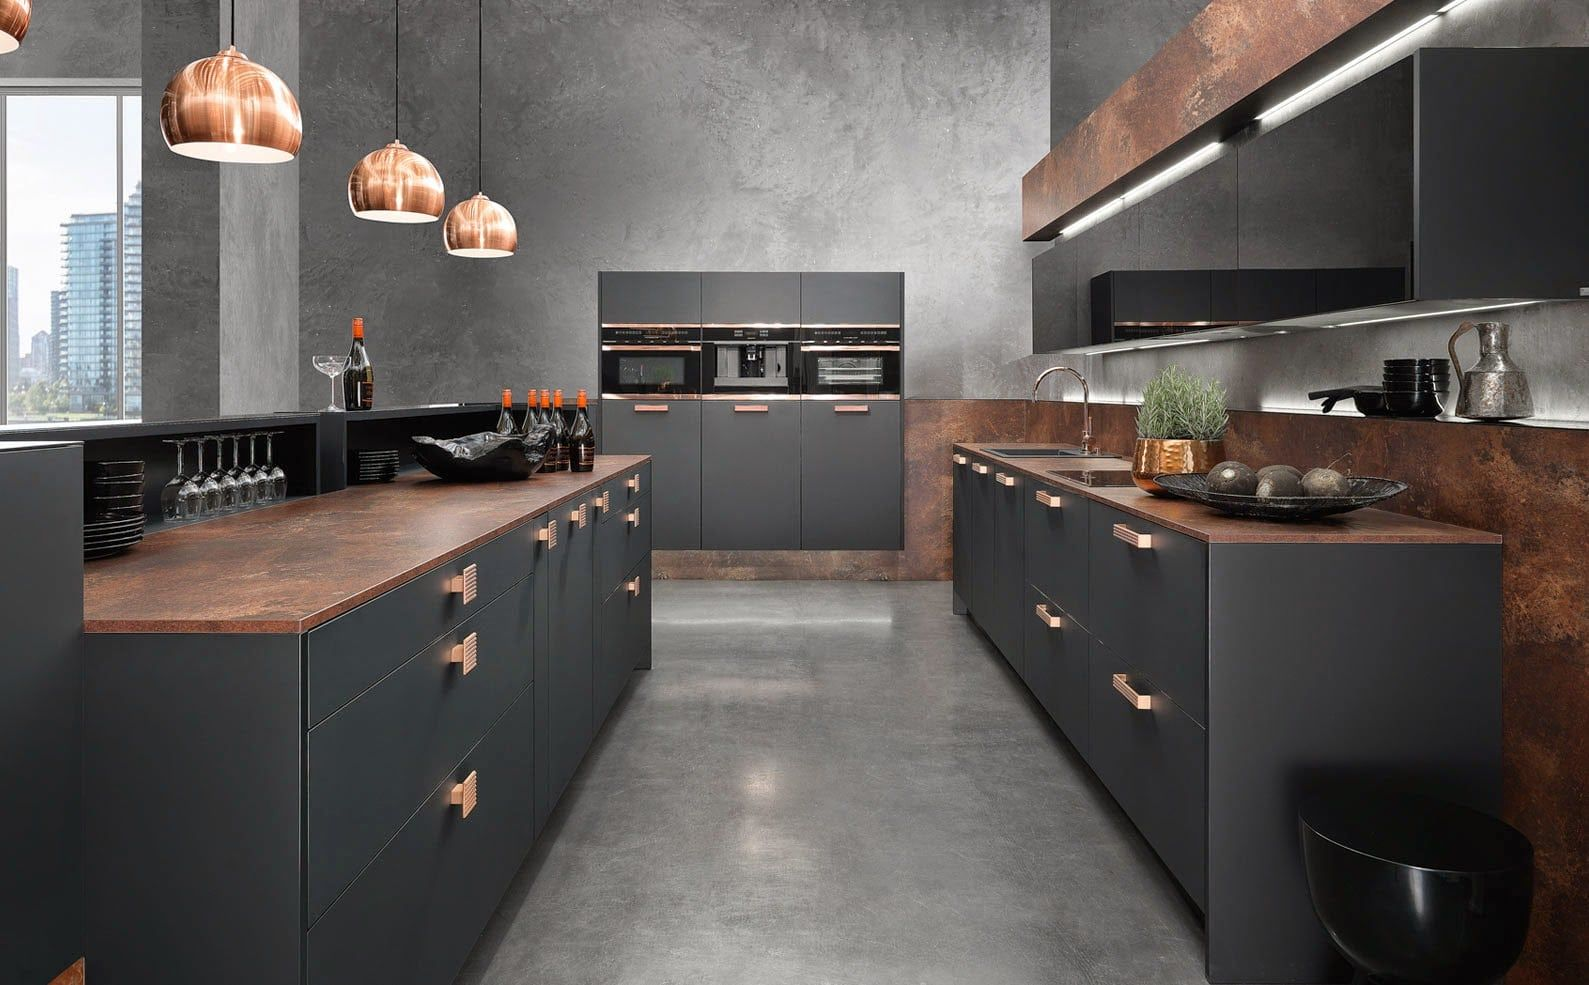 Monochromatic kitchens are the new kitchen trend. And